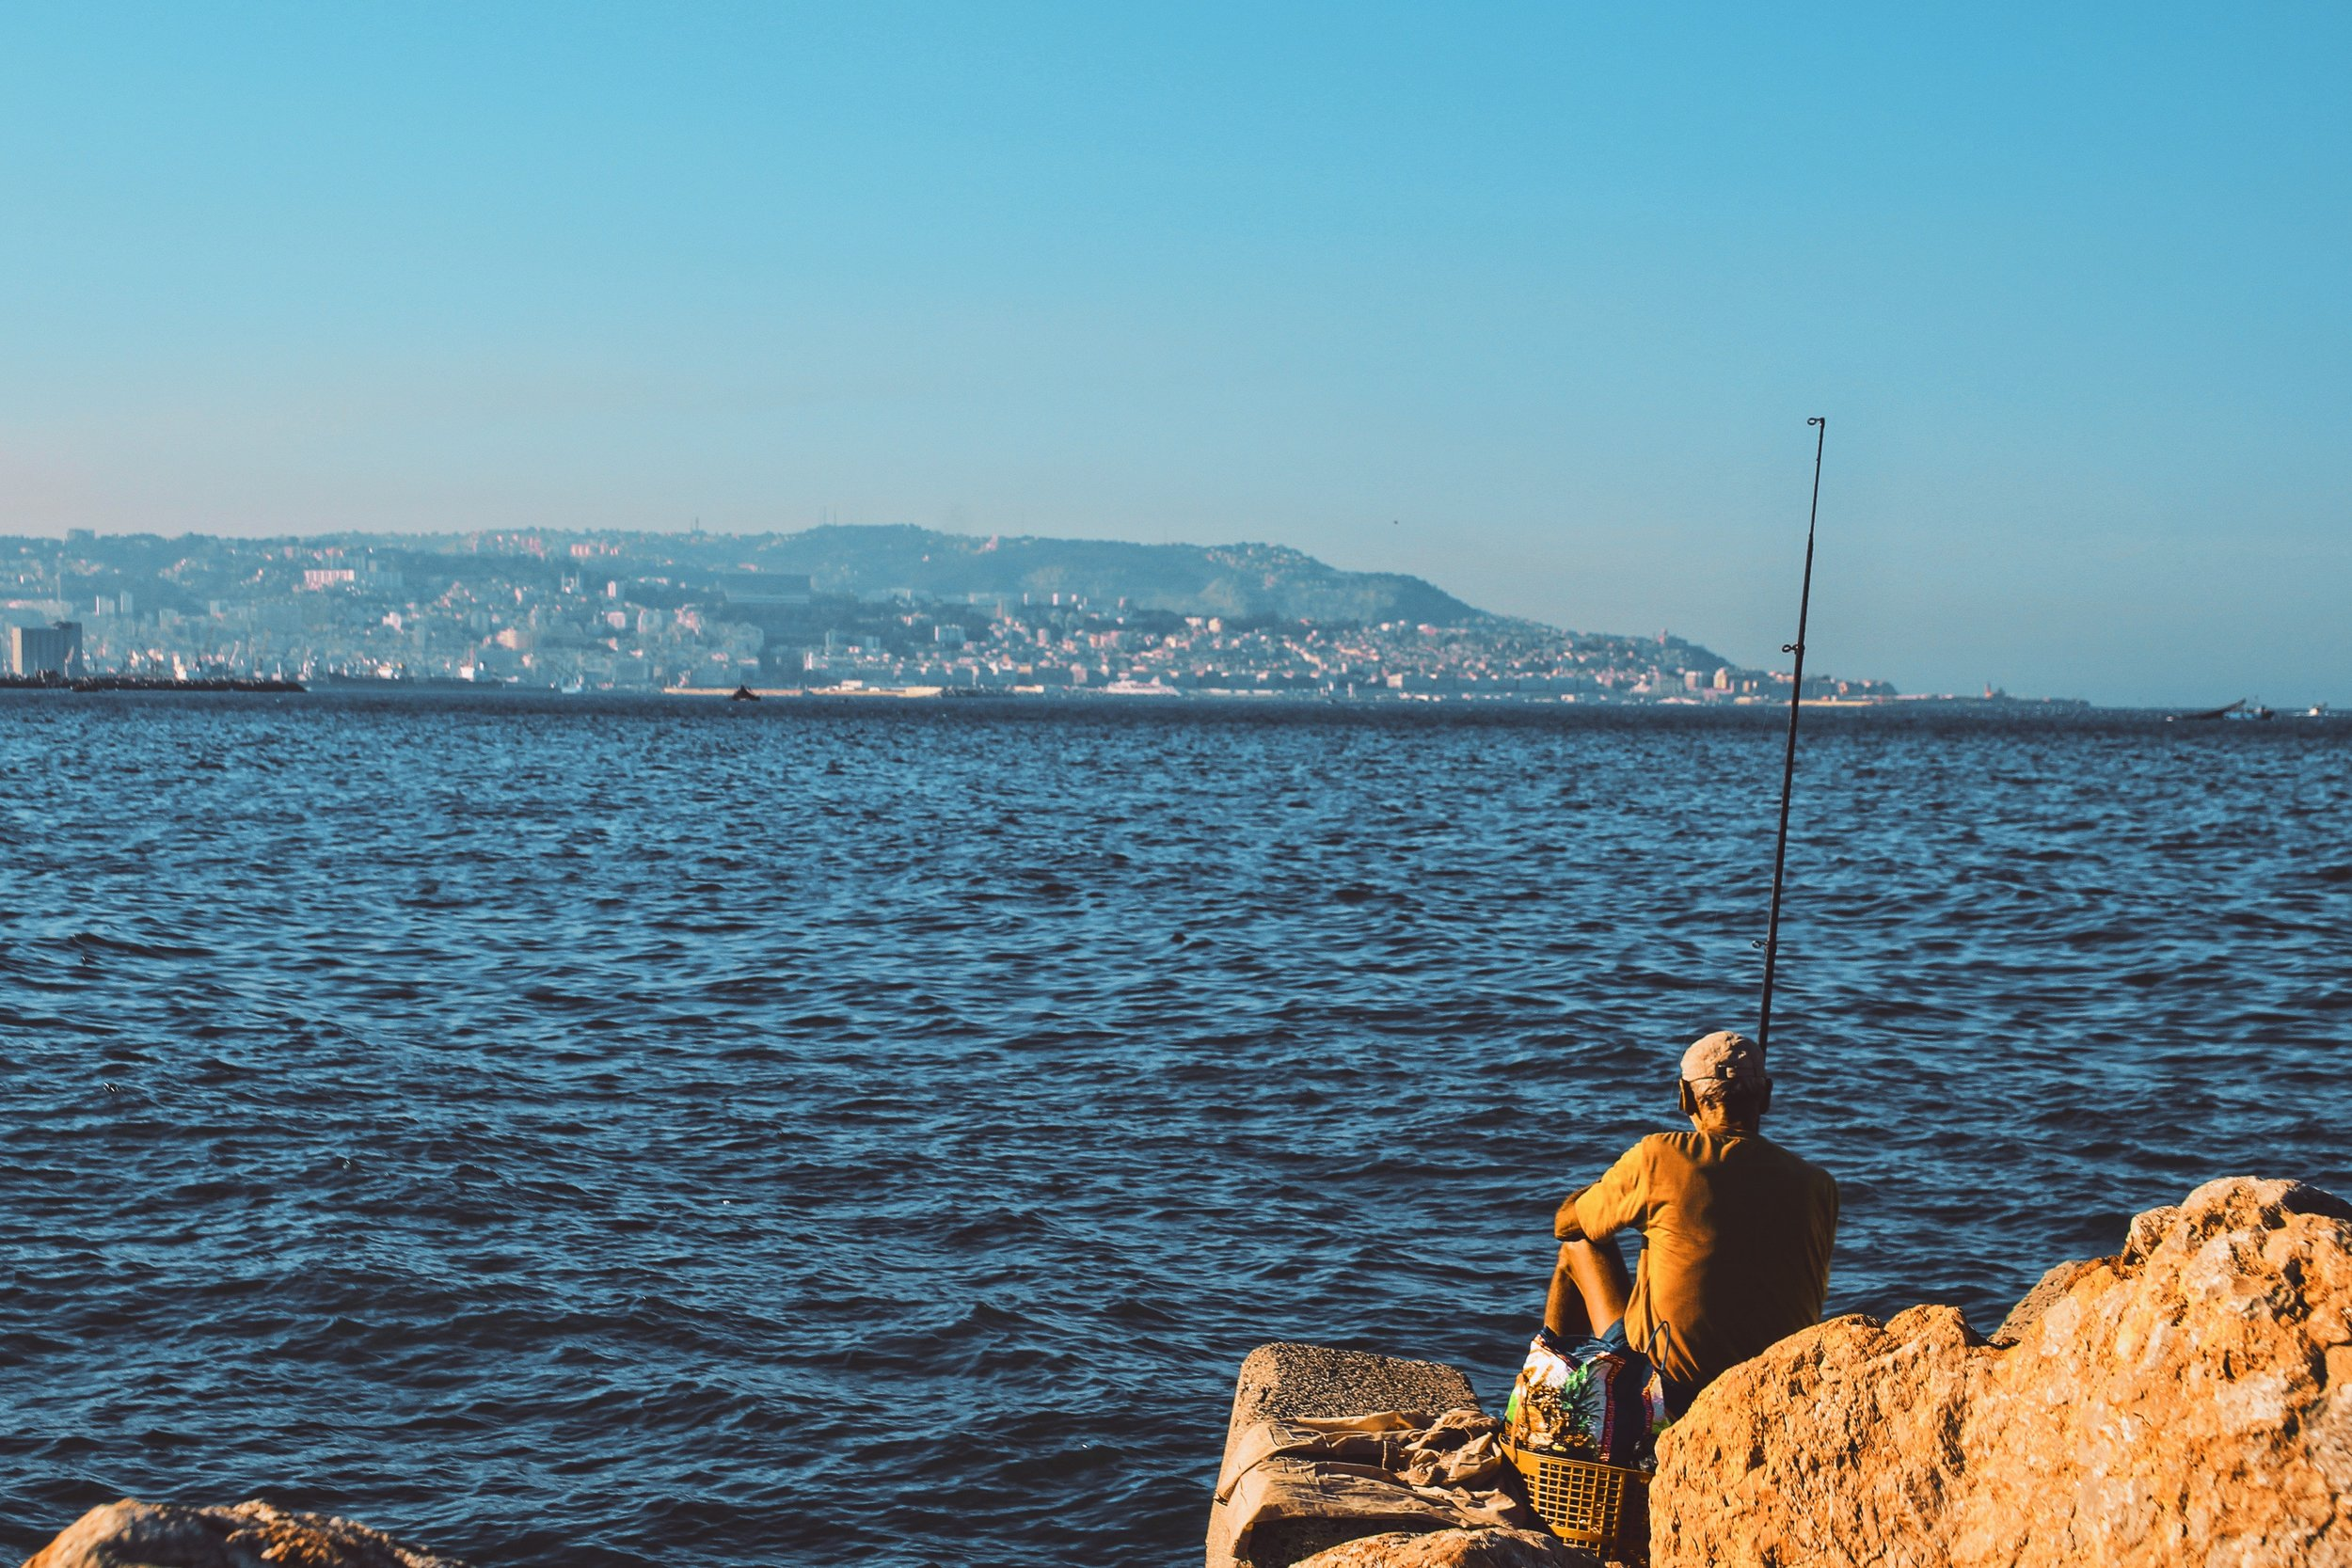 daylight-fisherman-fishing-695928.jpg